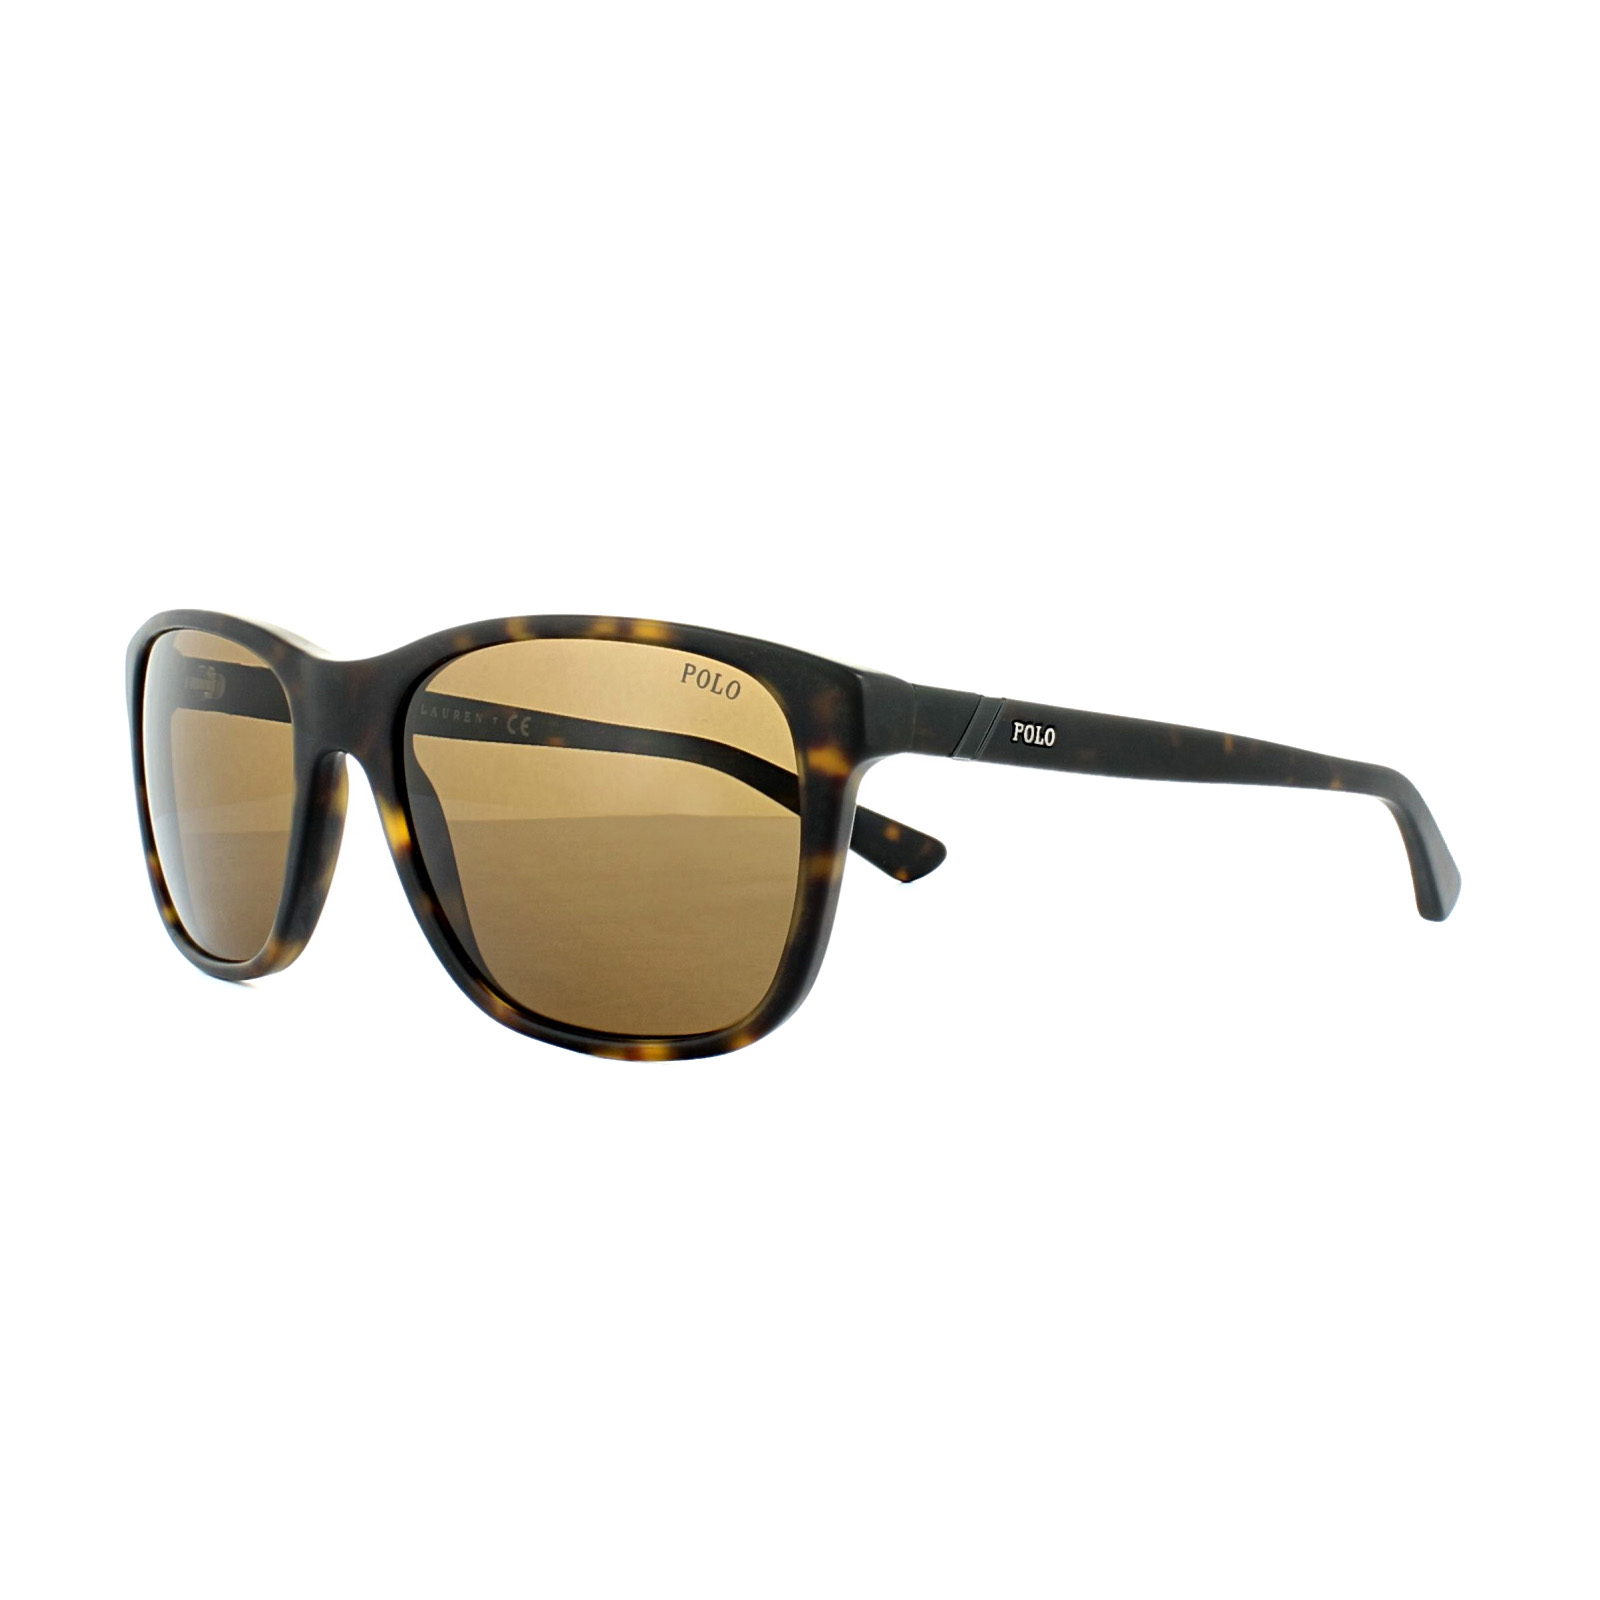 5a156032370 Sentinel Polo Ralph Lauren Sunglasses 4085 518273 Matt Dark Havana Dark  Brown